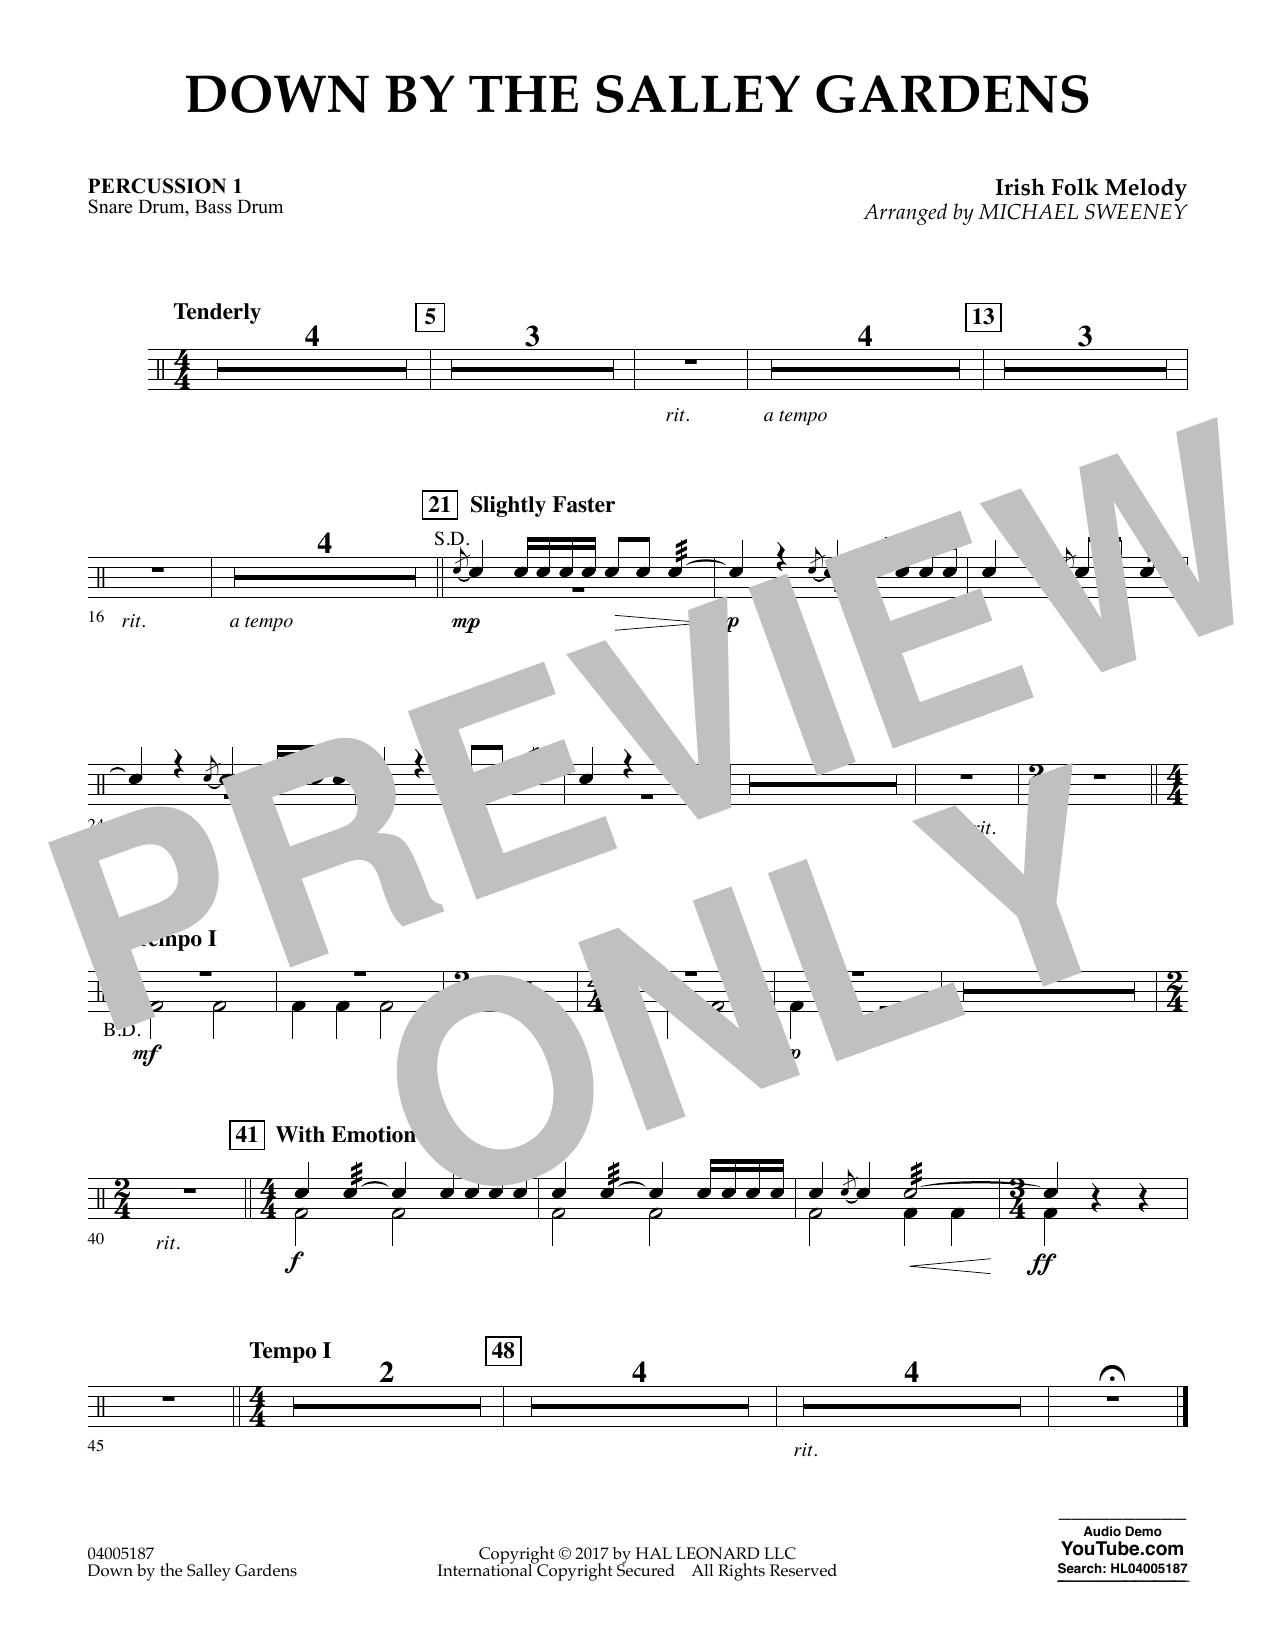 Down by the Salley Gardens - Percussion 1 (Flex-Band)